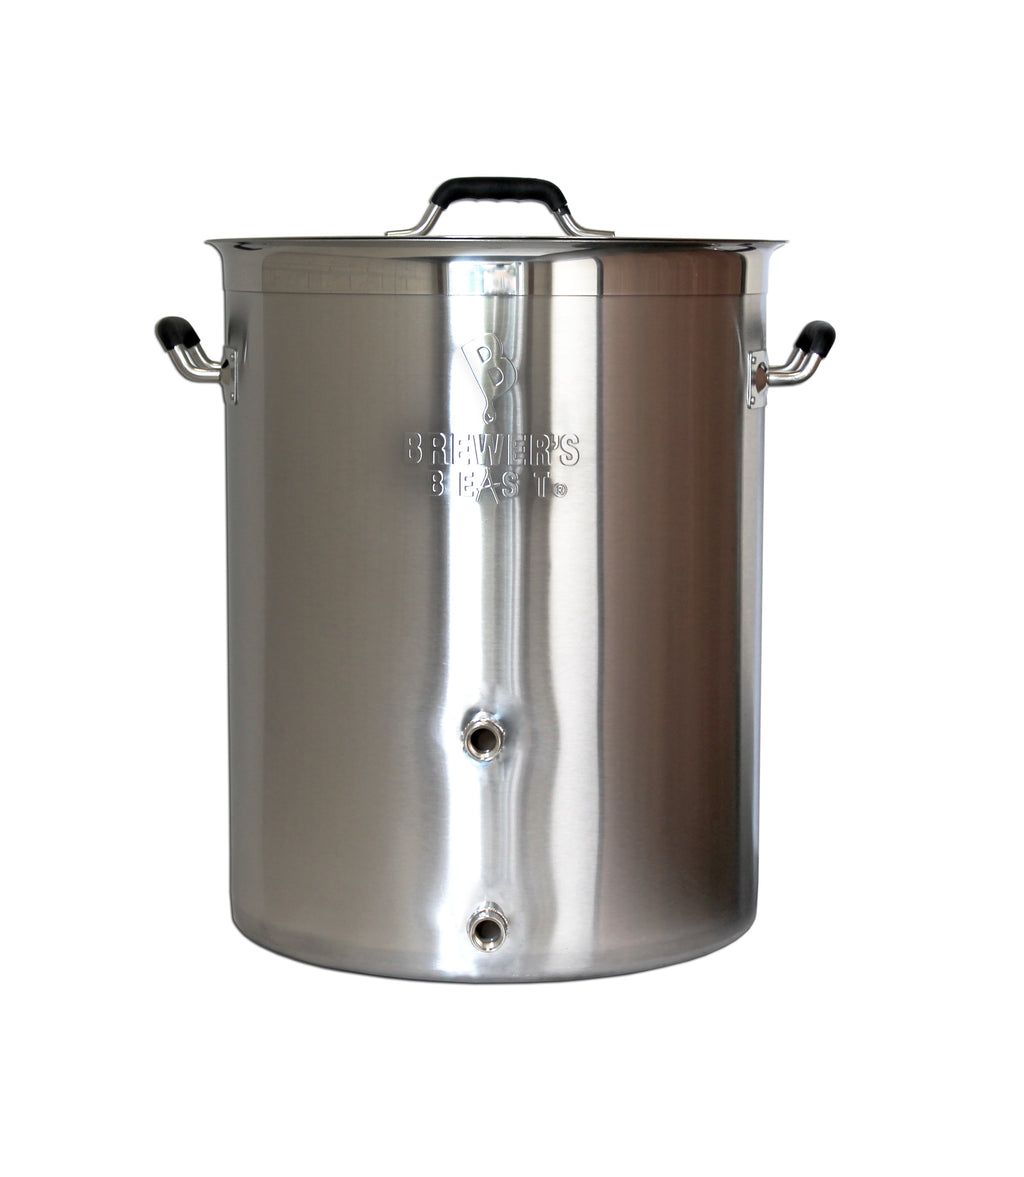 Brewer's Beast Brewing Kettle 16 Gallon W/Valve and Plug